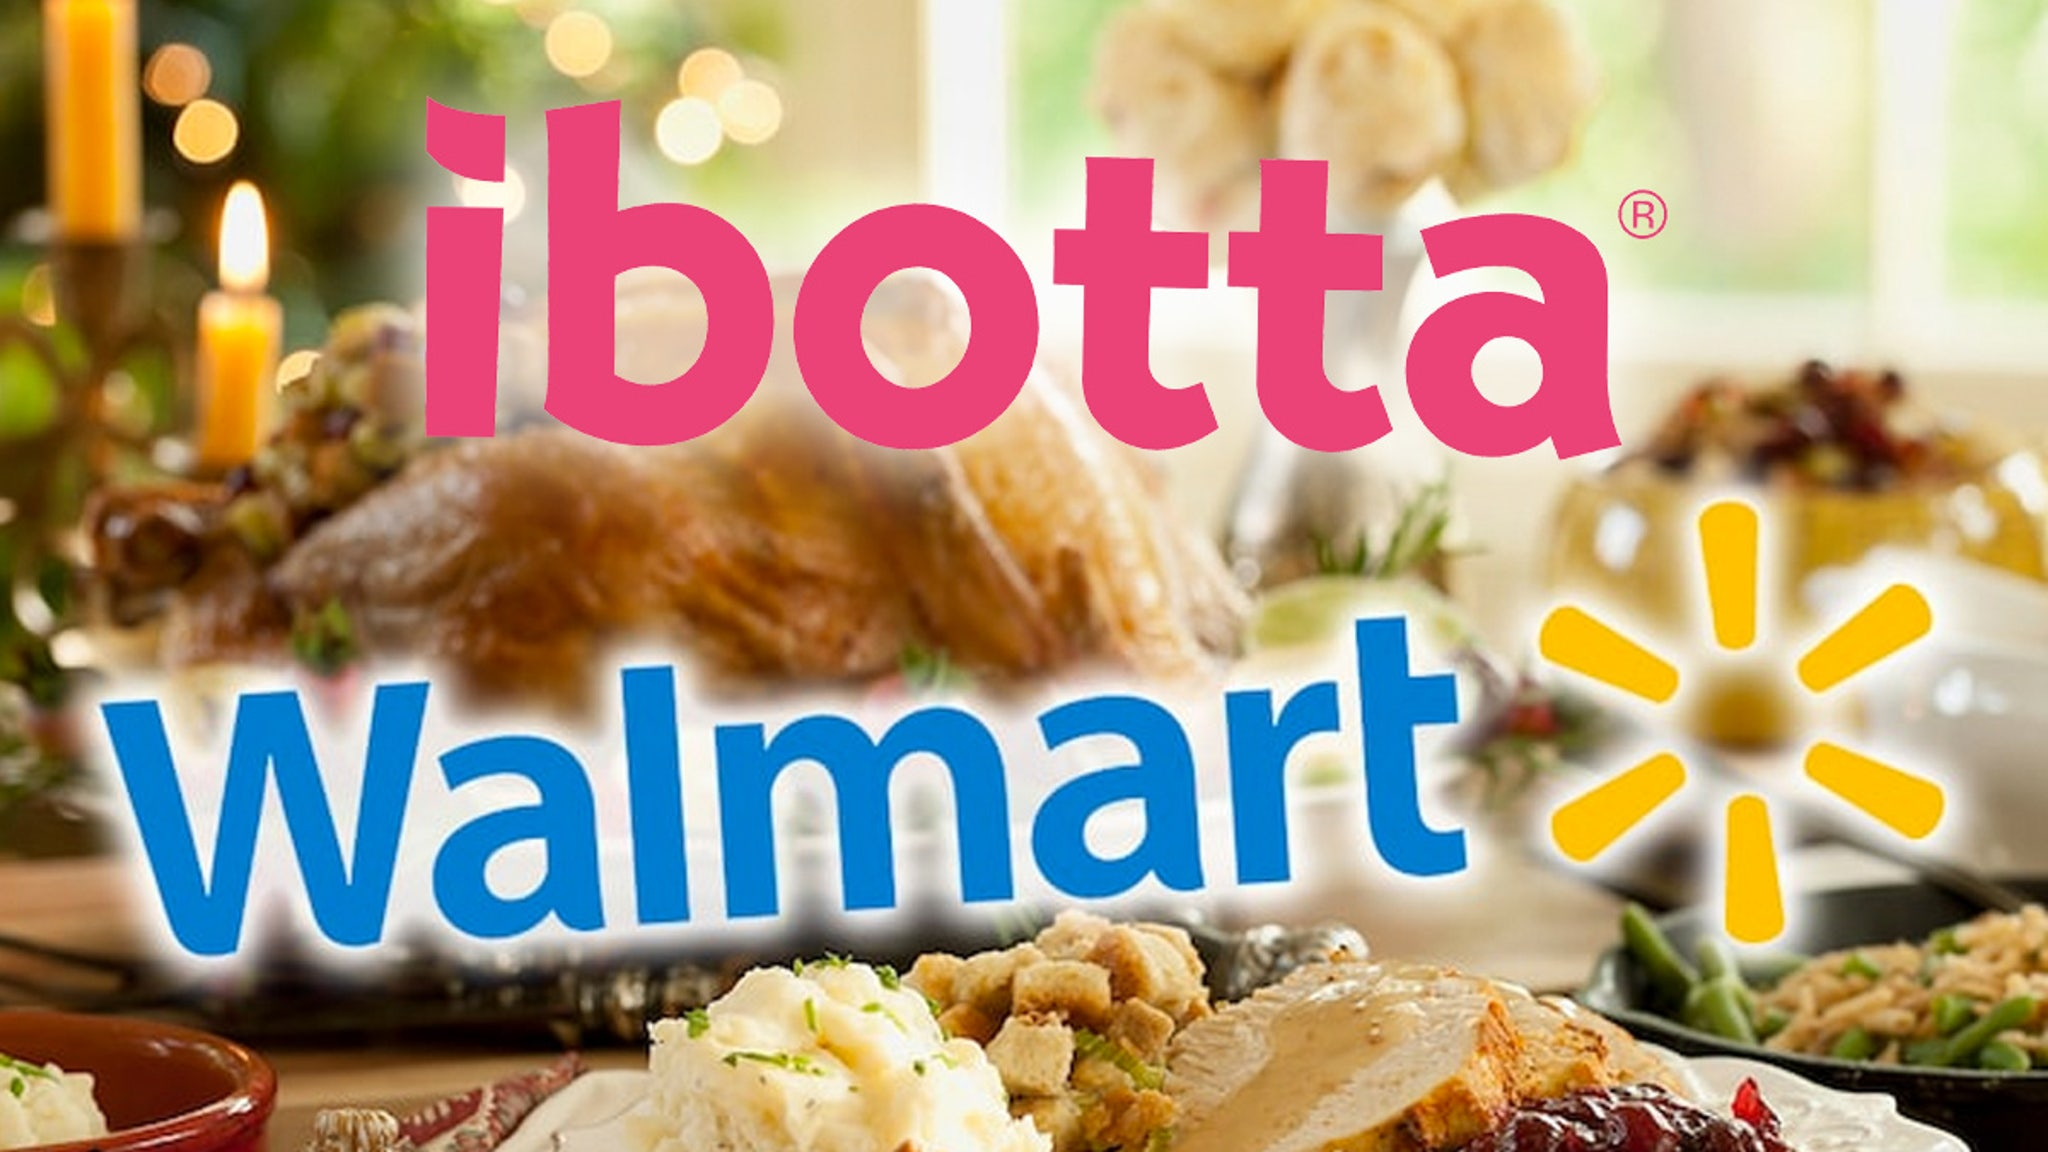 Ibotta Free Thanksgiving Dinners For All ... Just Shop at Walmart!!!